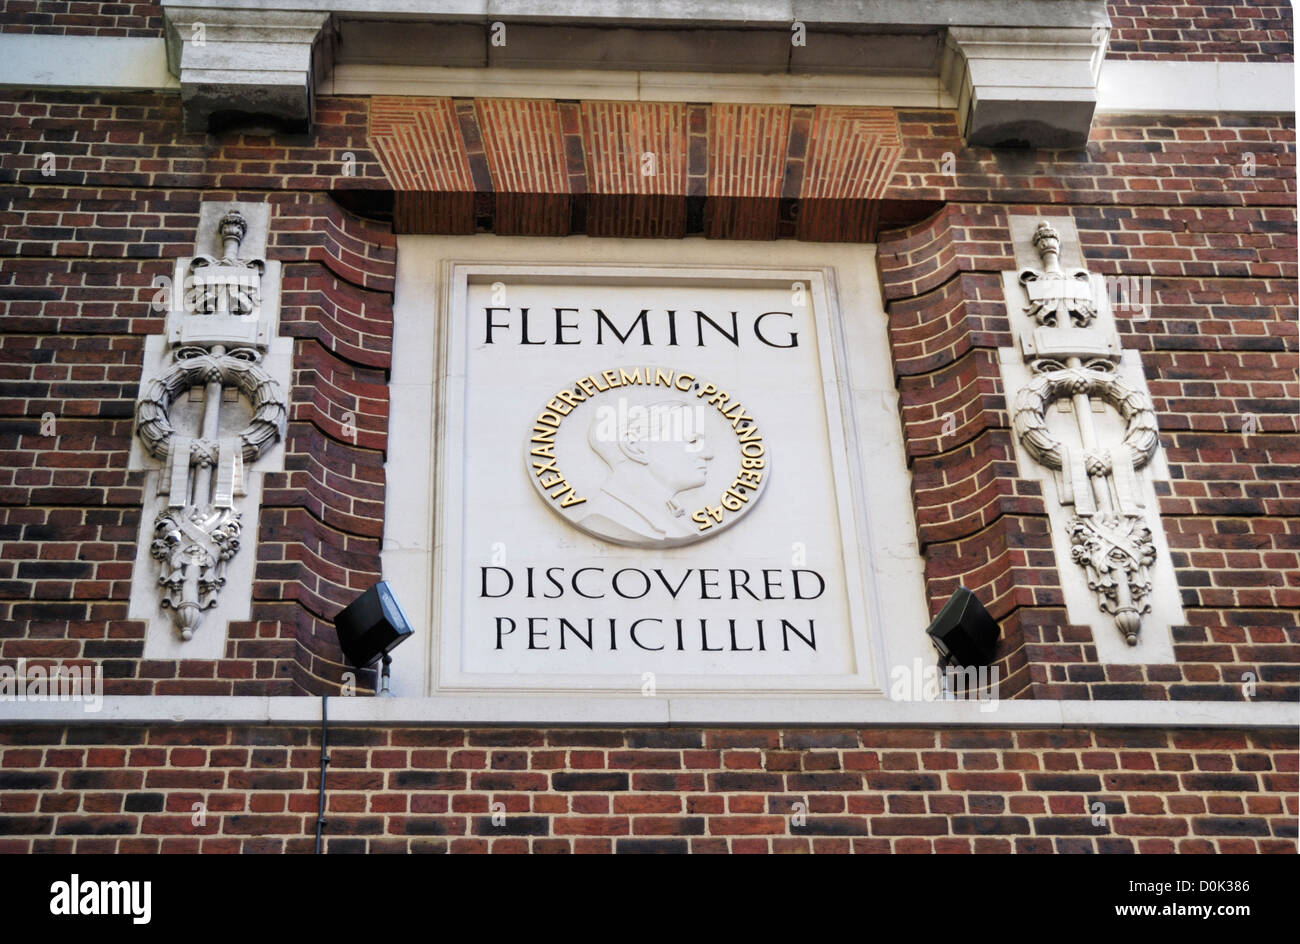 Stone plaque commemorating the discovery of penicillin by Sir Alexander Fleming at St Marys Hospital. - Stock Image